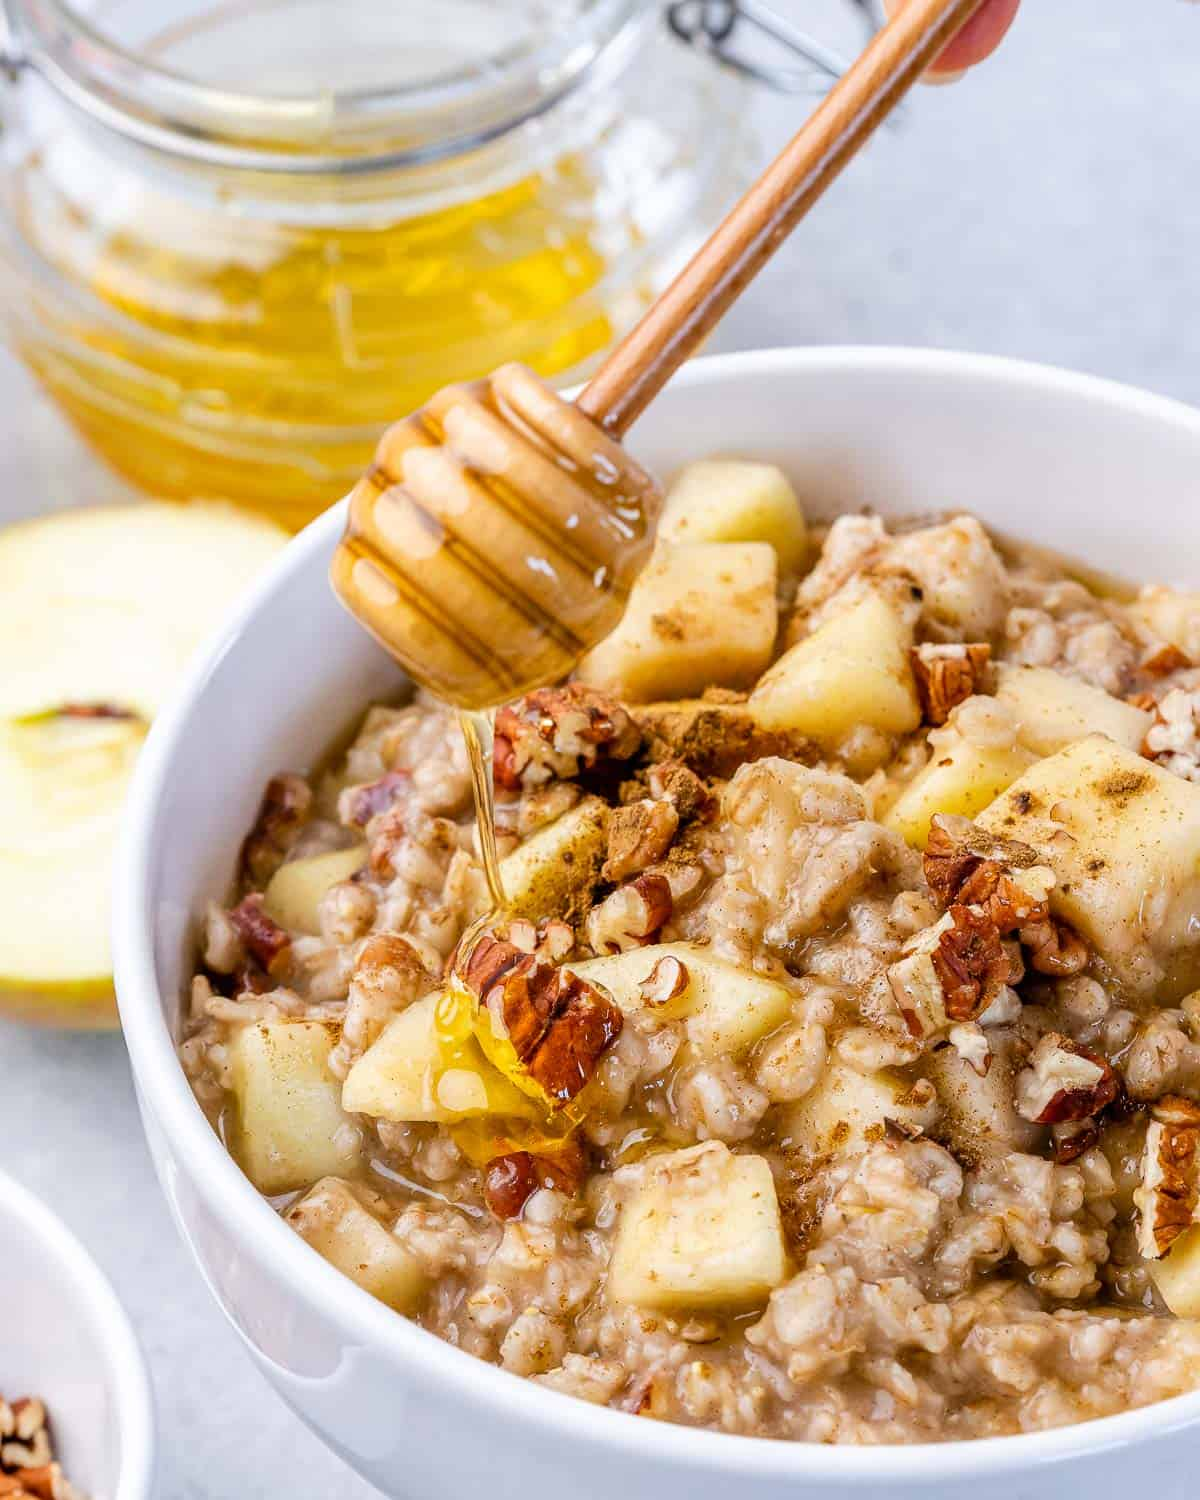 honey over oatmeal with apples